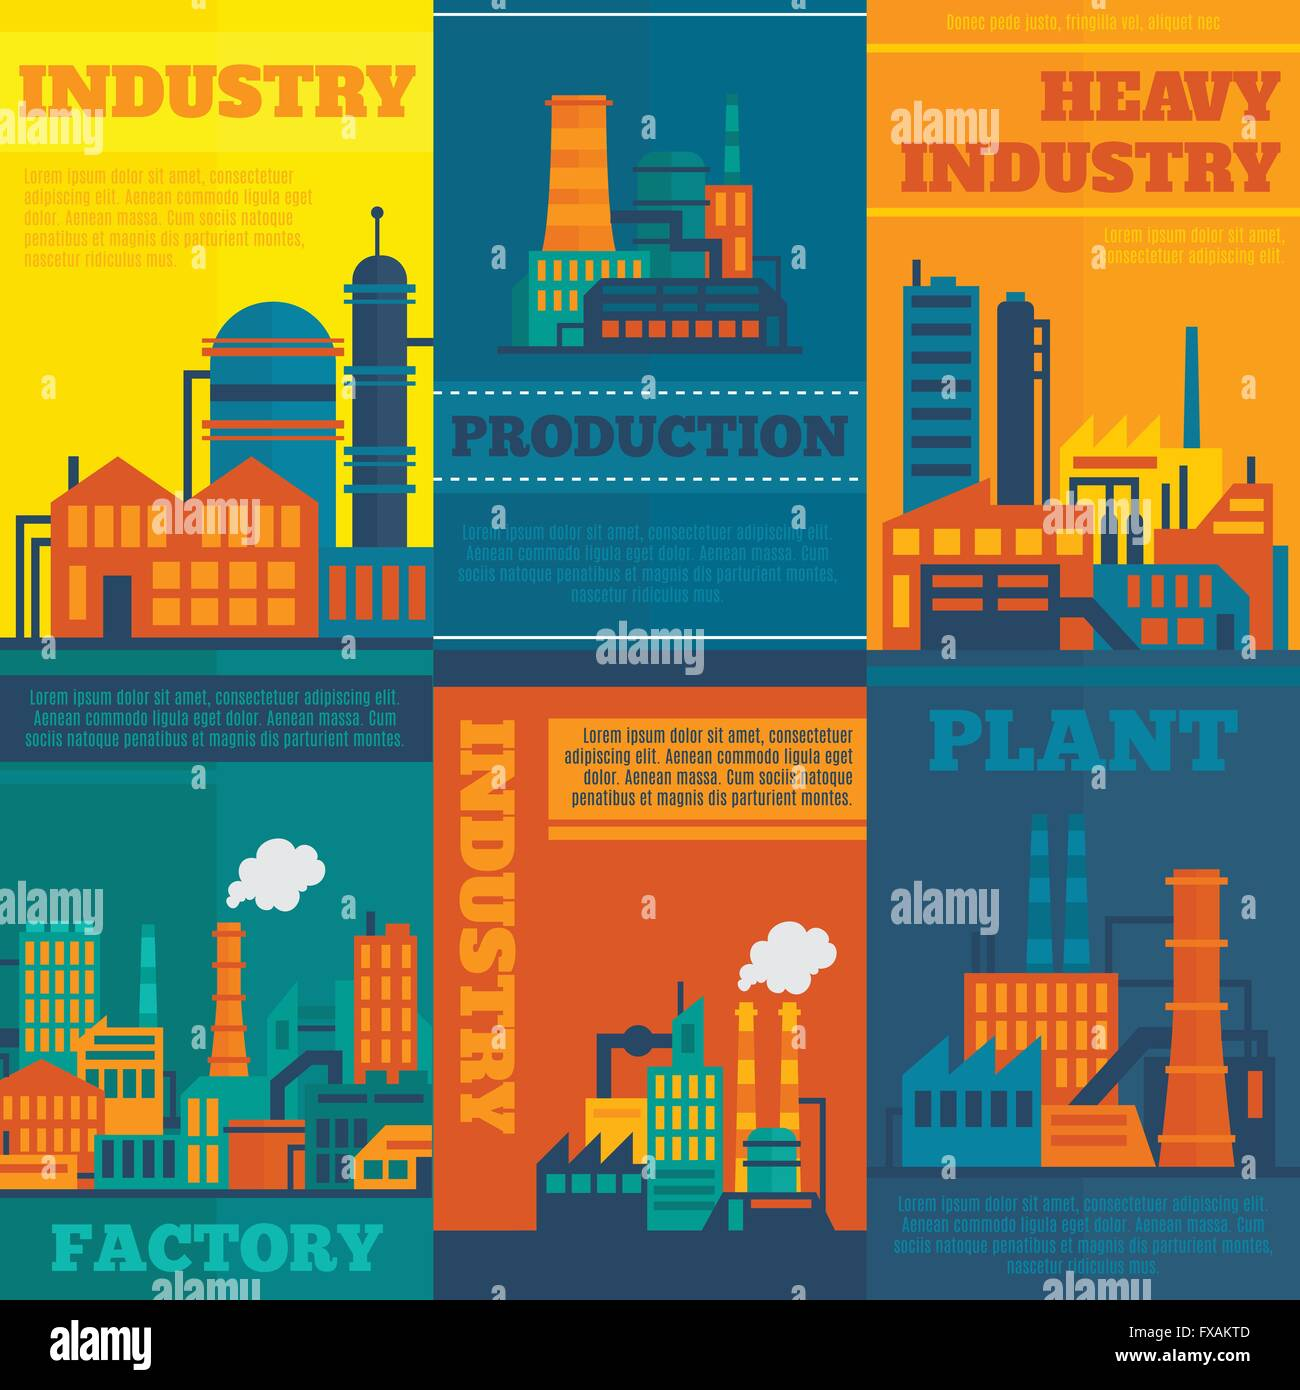 Industry poster set - Stock Image